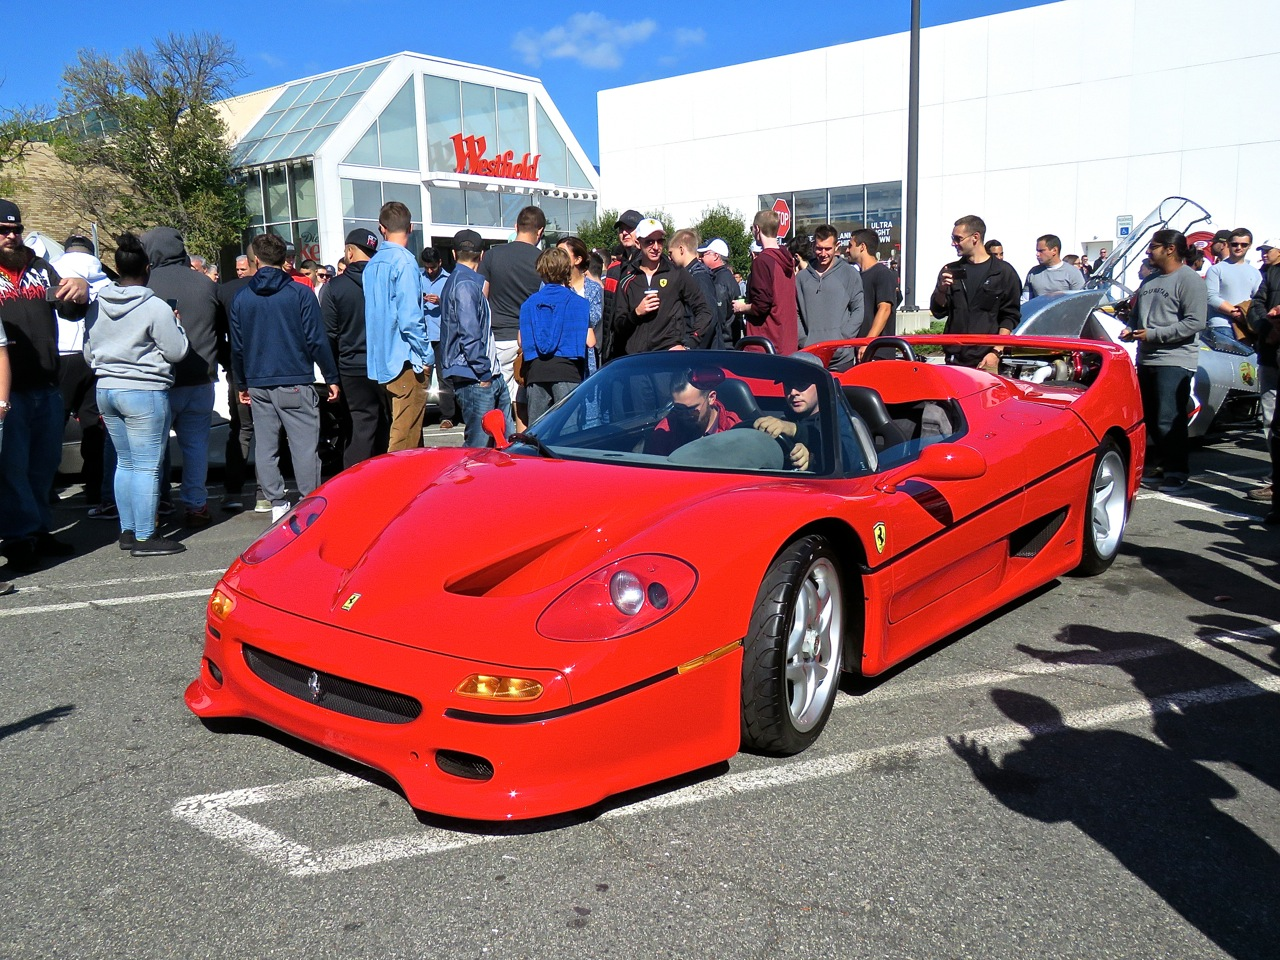 Ferrari F50 Cars and Caffe 1